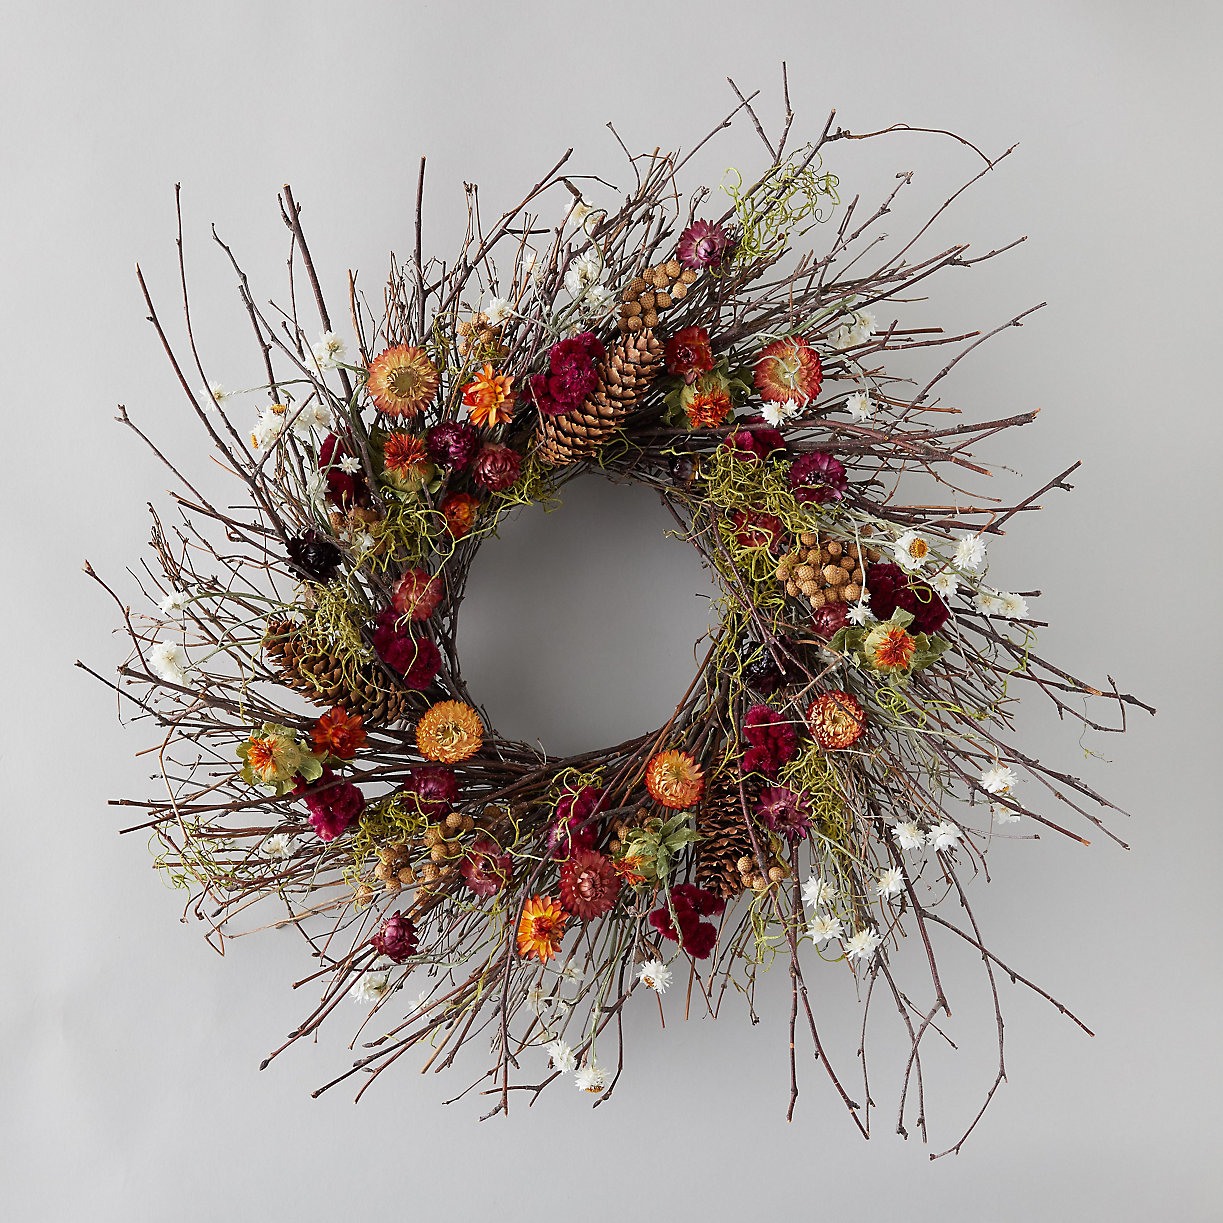 Vibrant fall wreath with birch branches